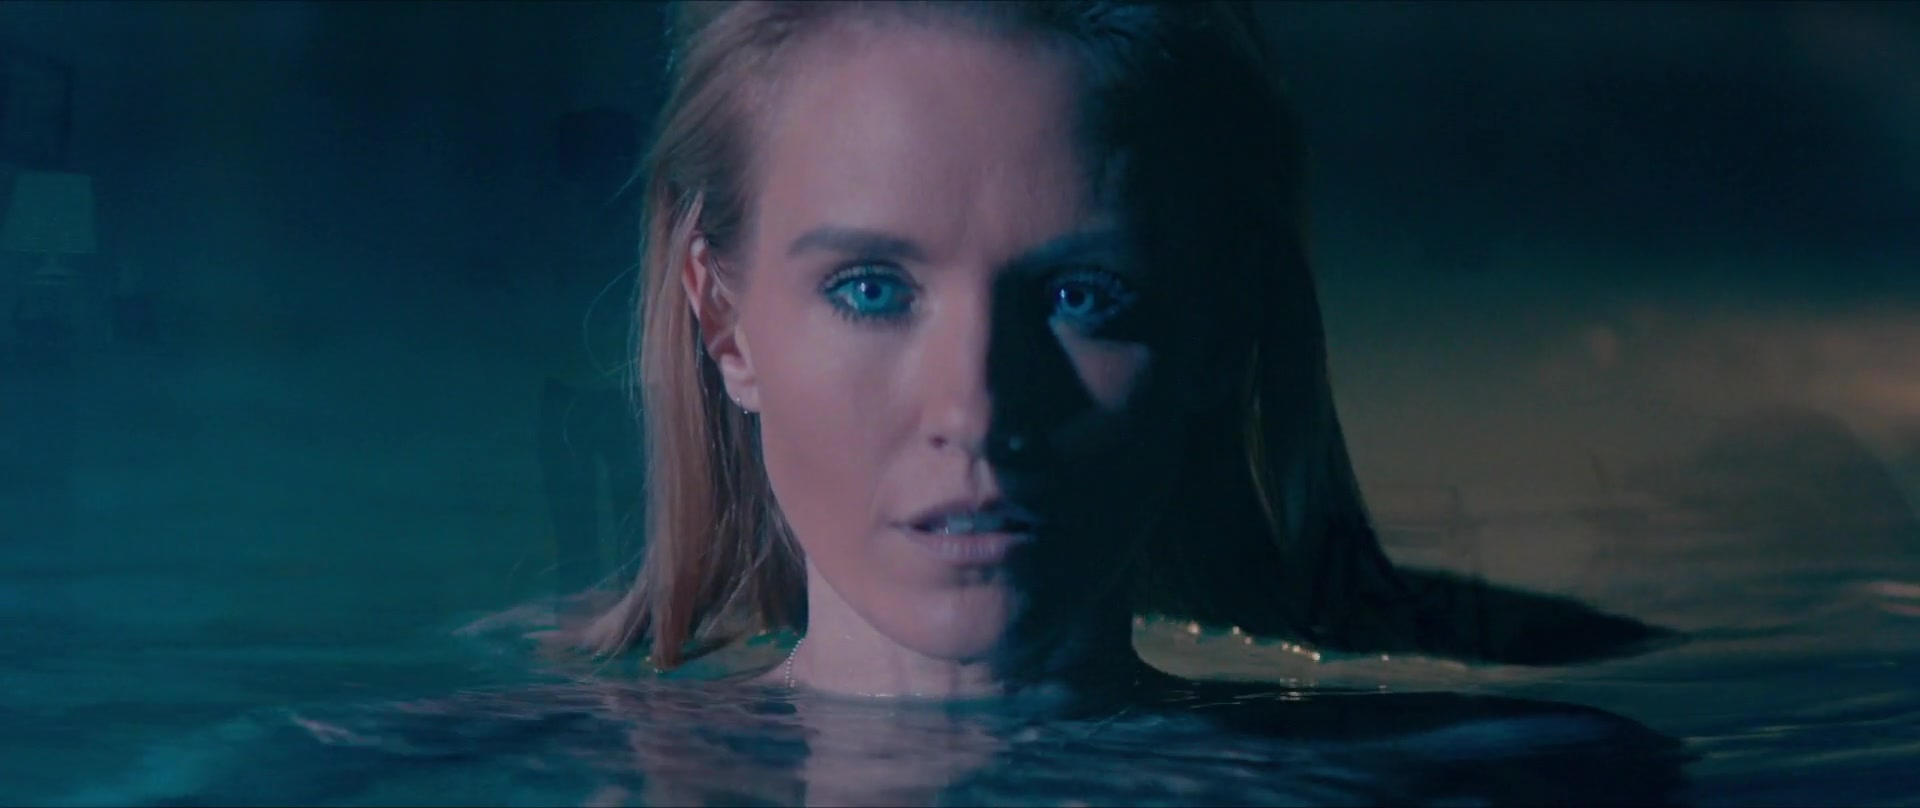 Nicky Whelan late night swim scene from inconceivable ii